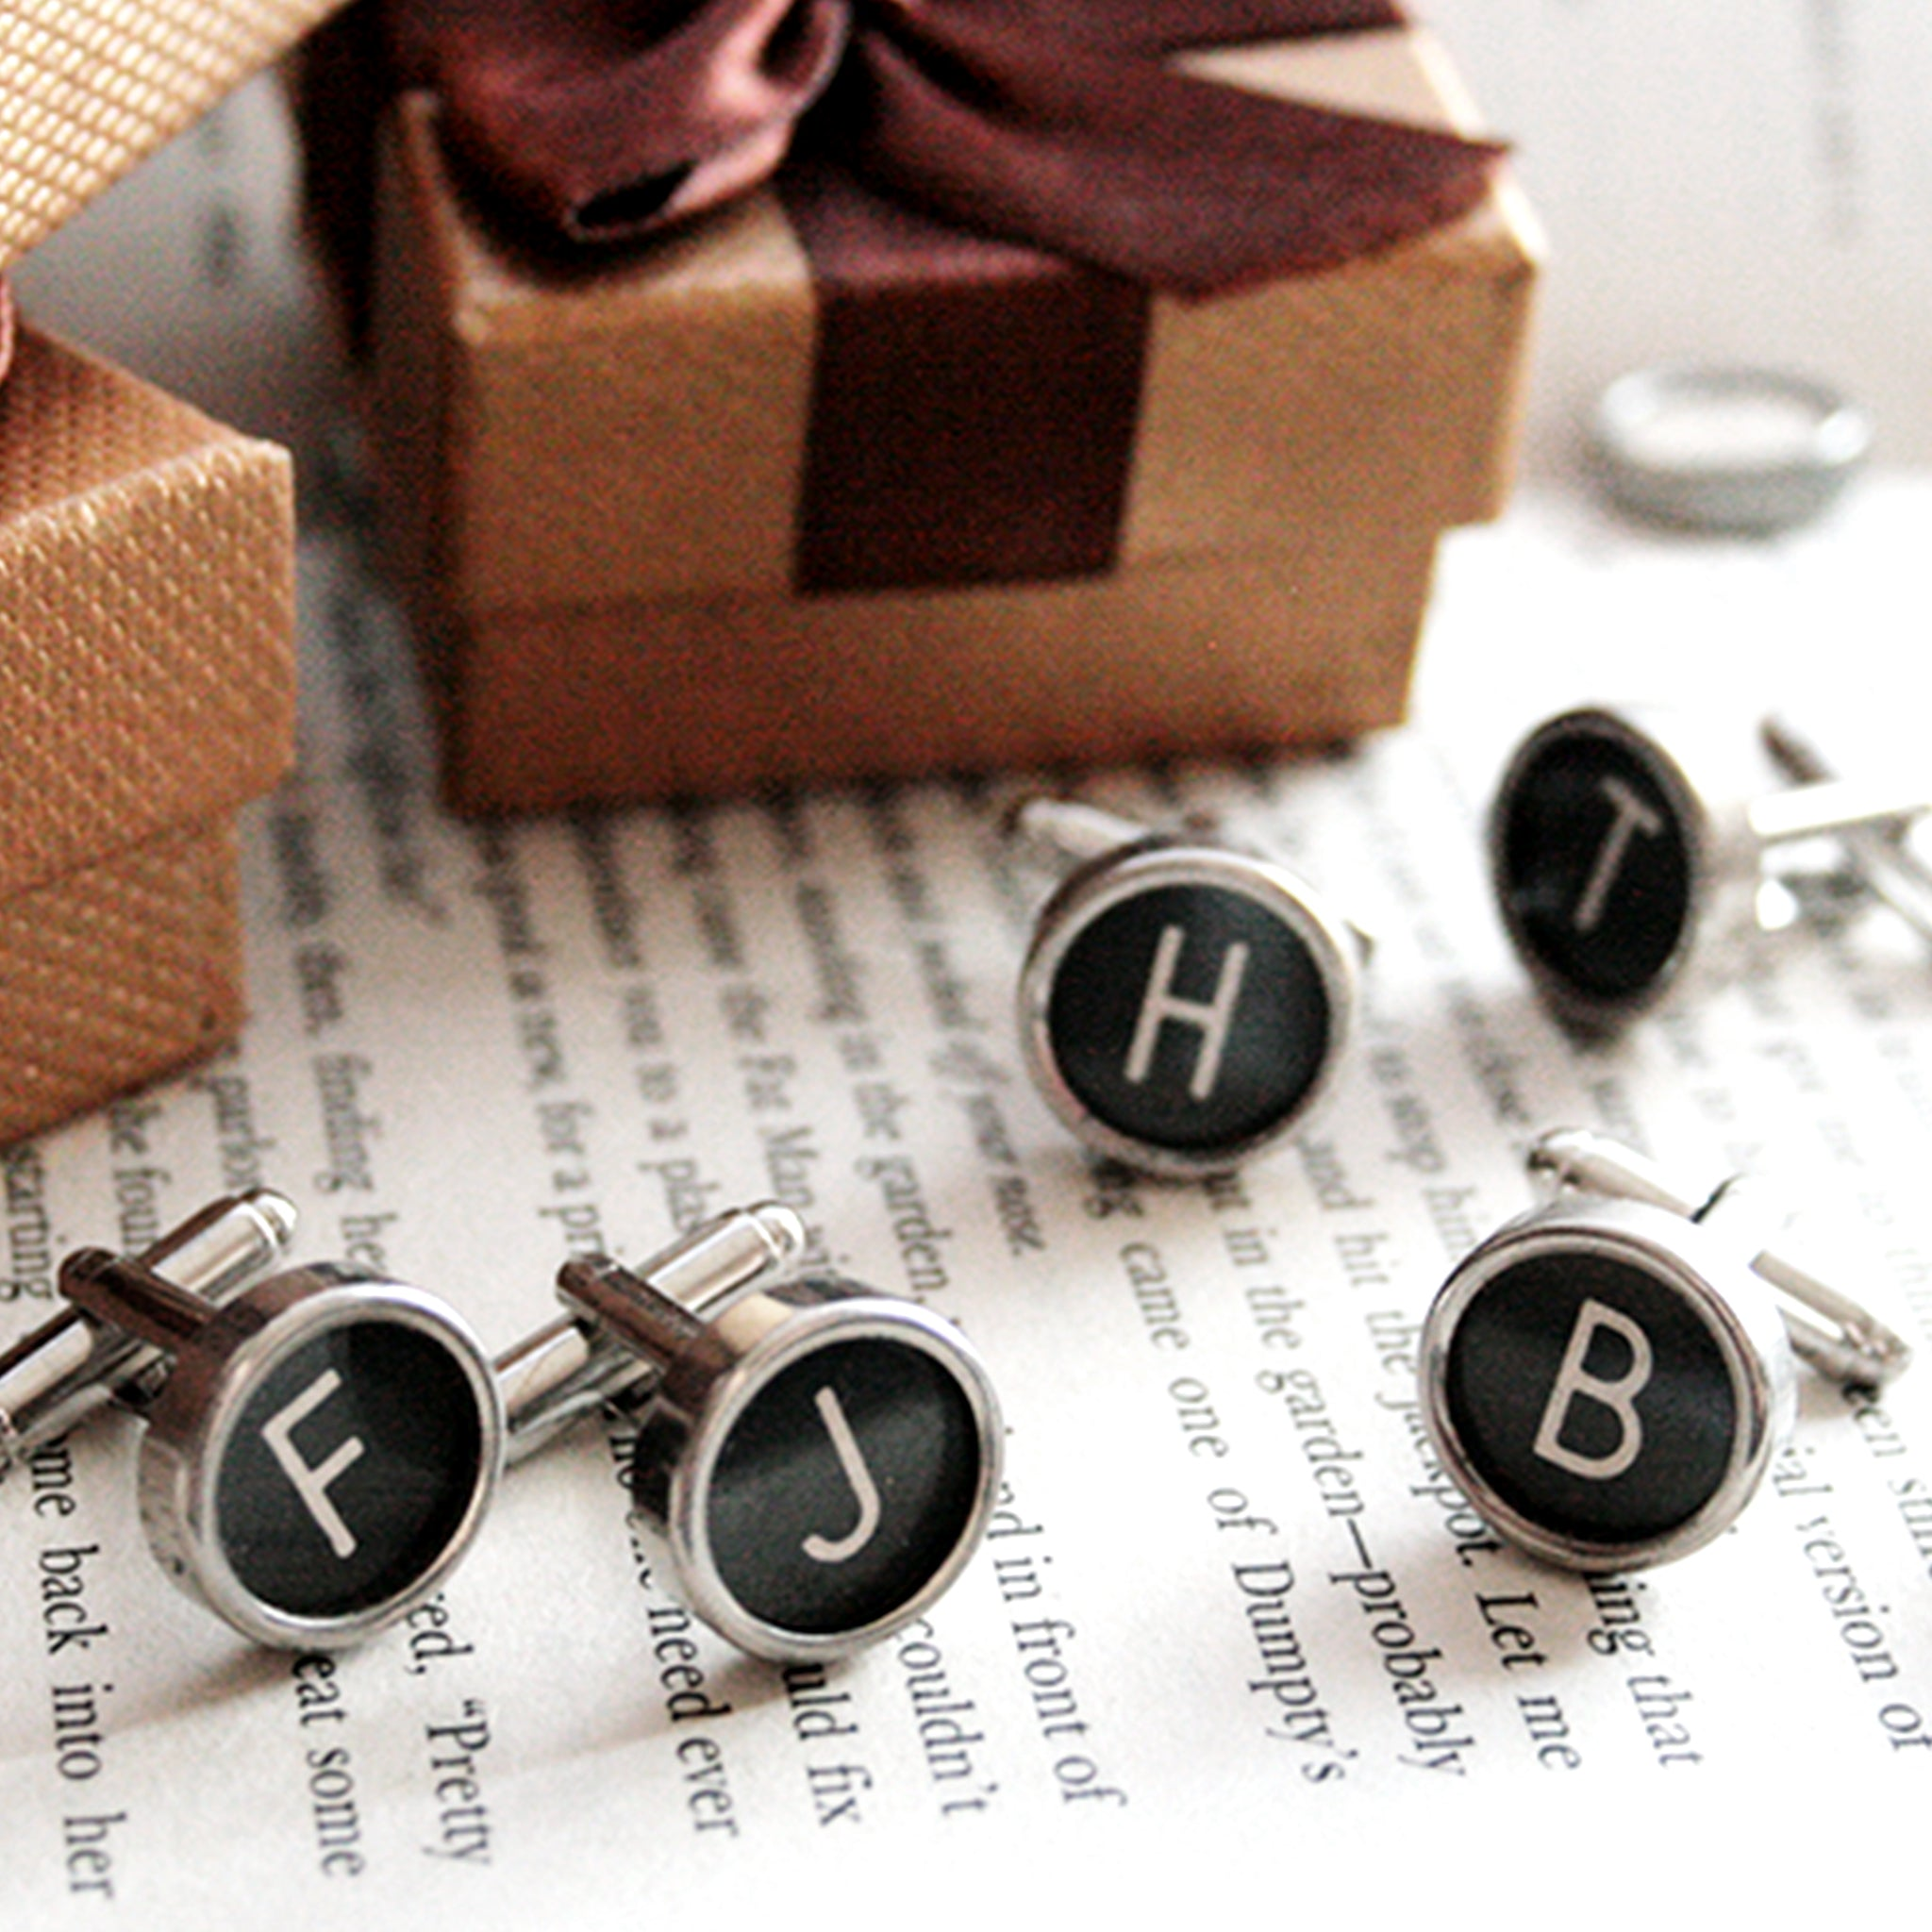 Many sets of cufflinks with initials made of real typewriter keys